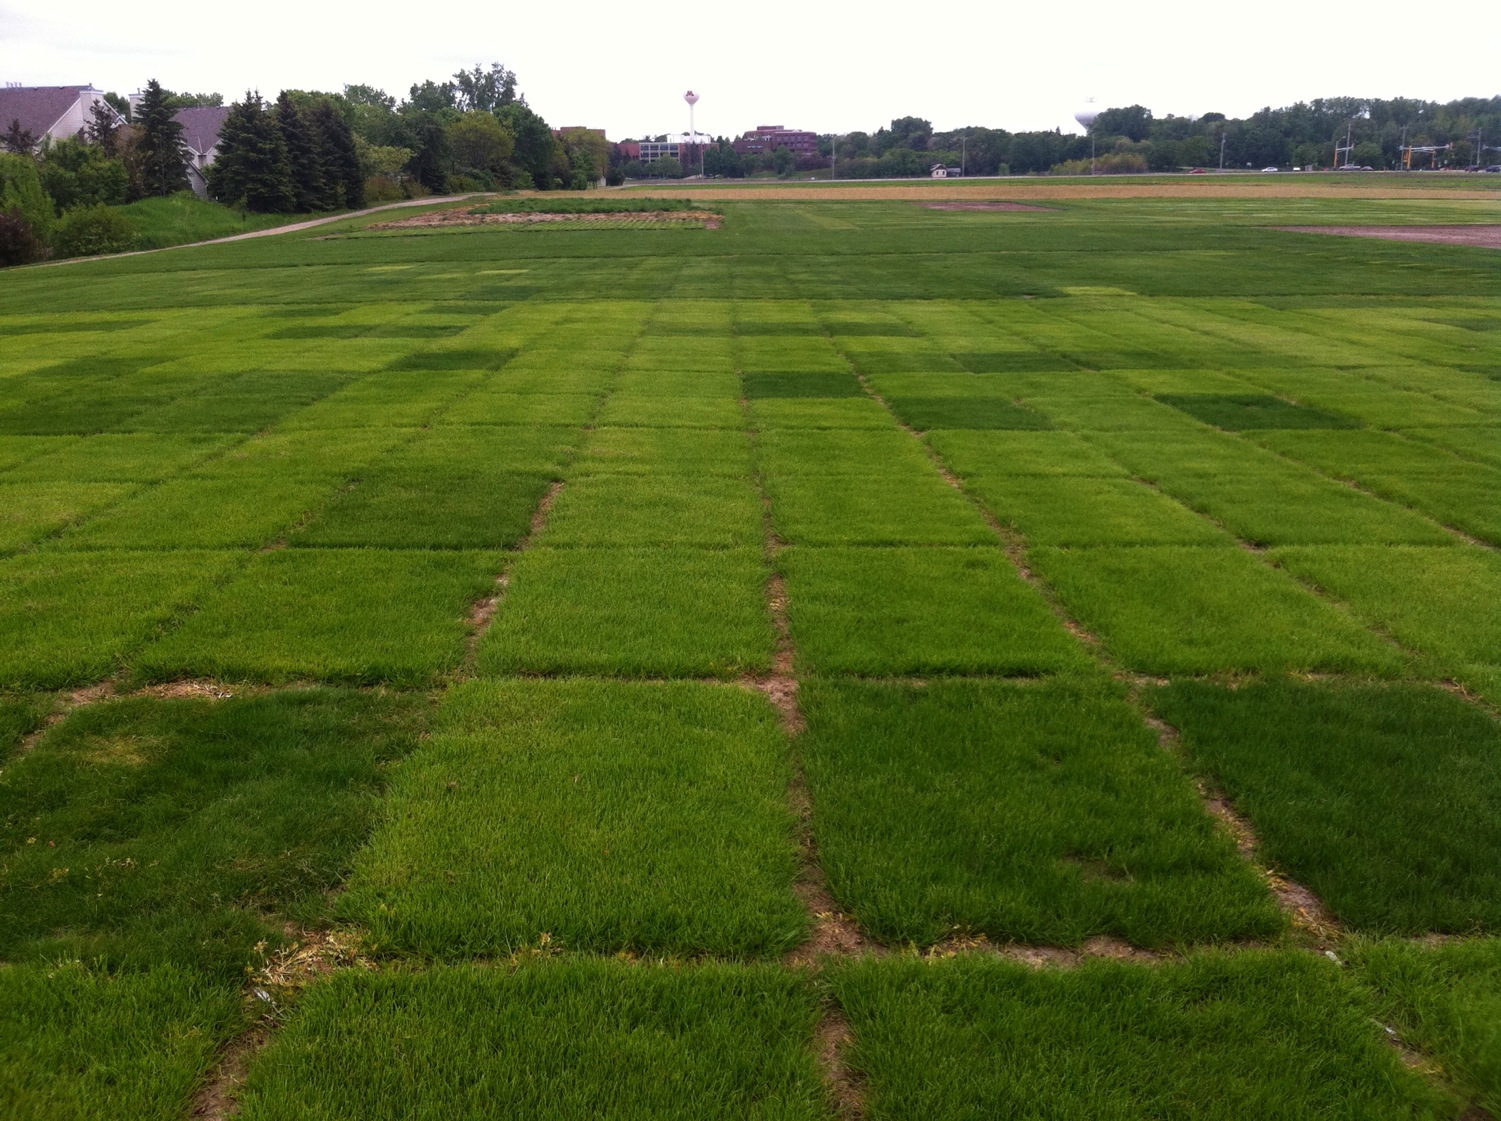 low input turf research plots